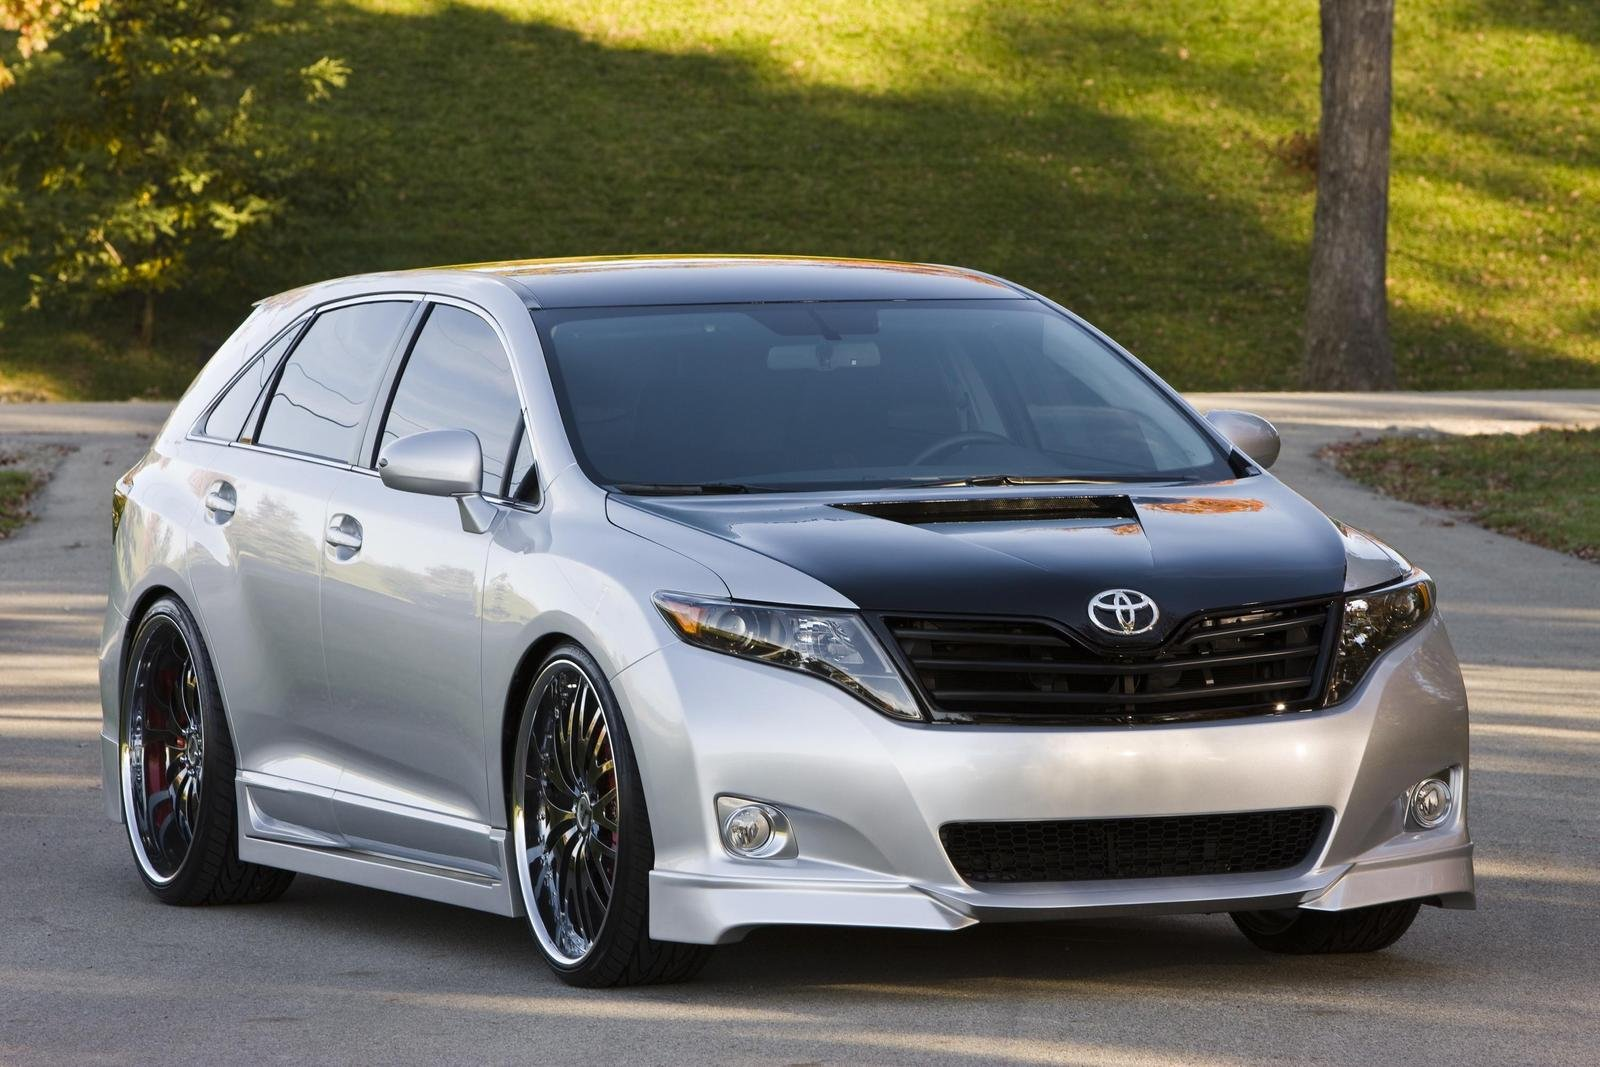 2008 Toyota Venza Sportlux By Street Image Review Top Speed